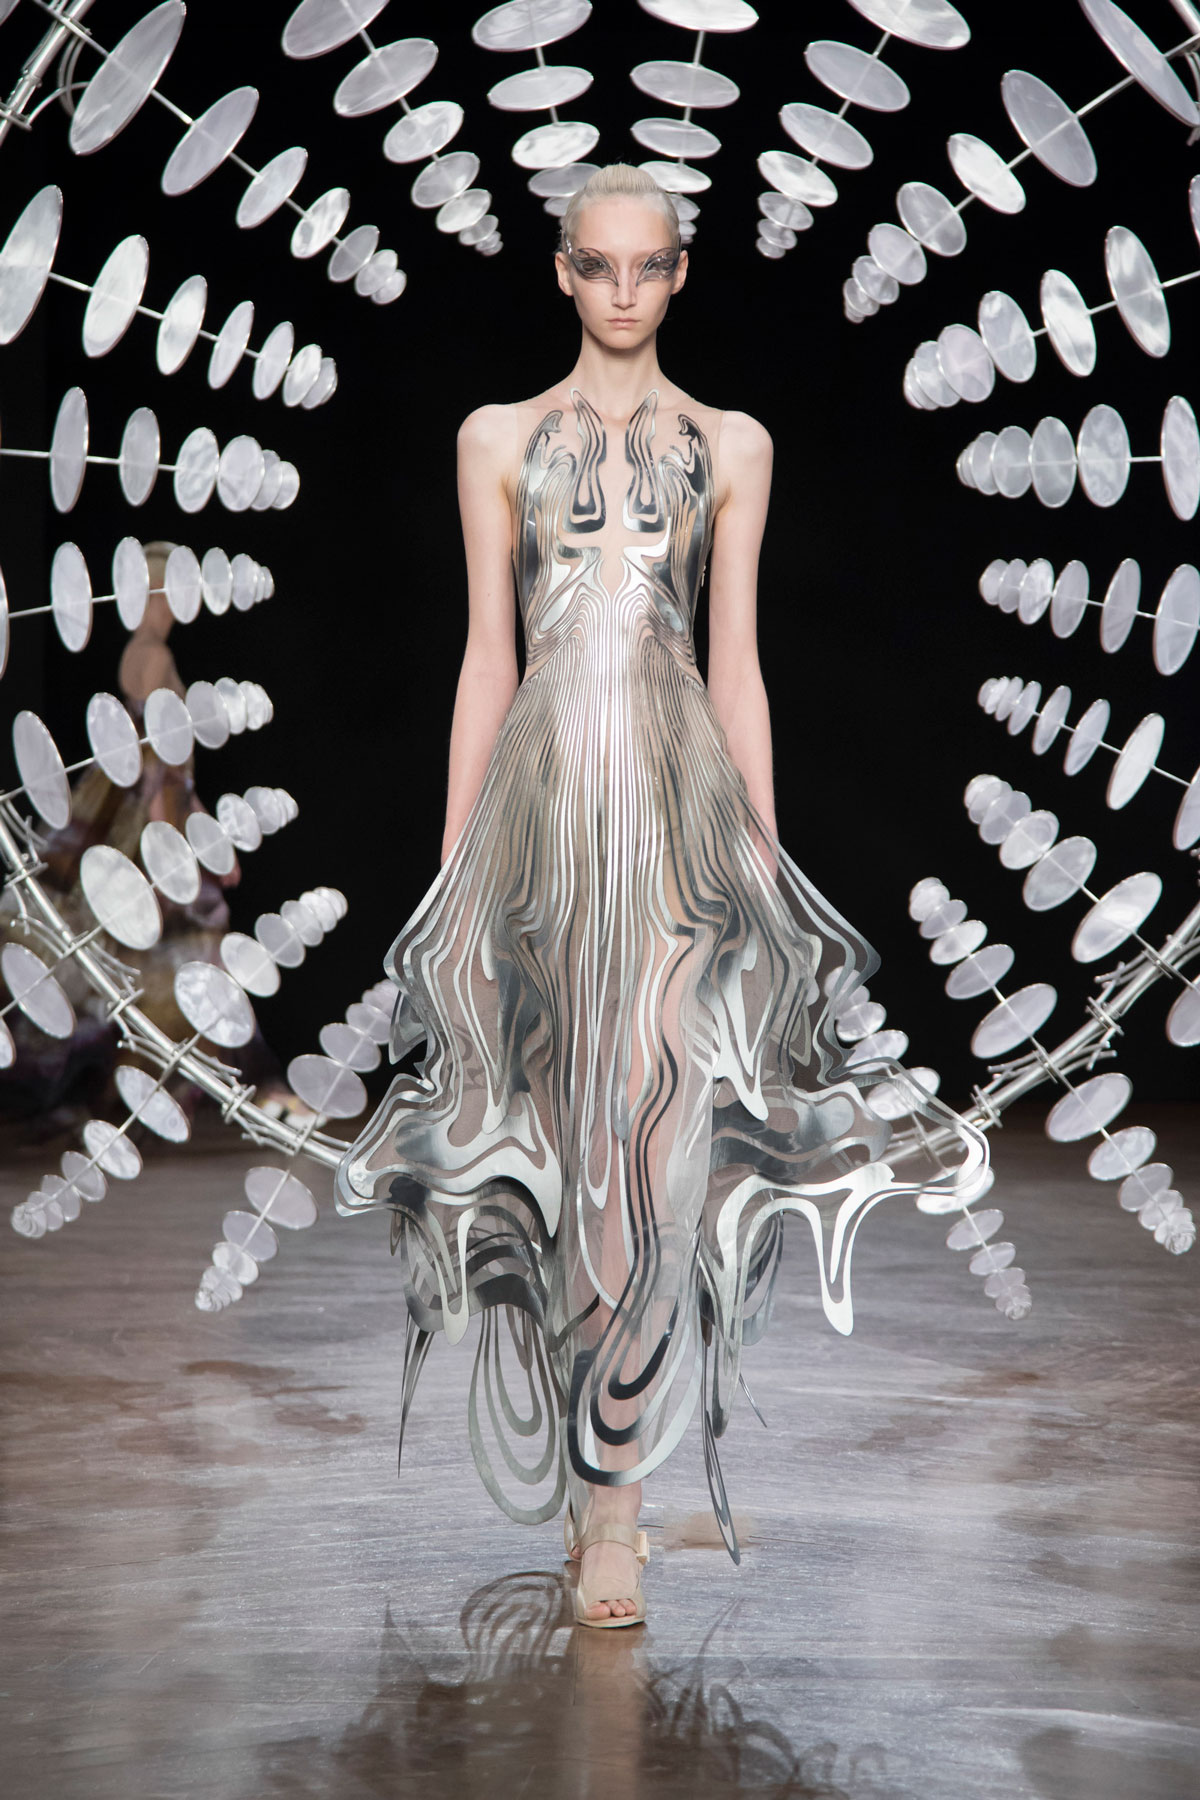 LE-MILE-Magazine-by-LE-MILE-STUDIOS-IRIS-VAN-HERPEN-HAUTE-COUTURE-PARIS-WEEK-2019-show-AW2019_6.jpg